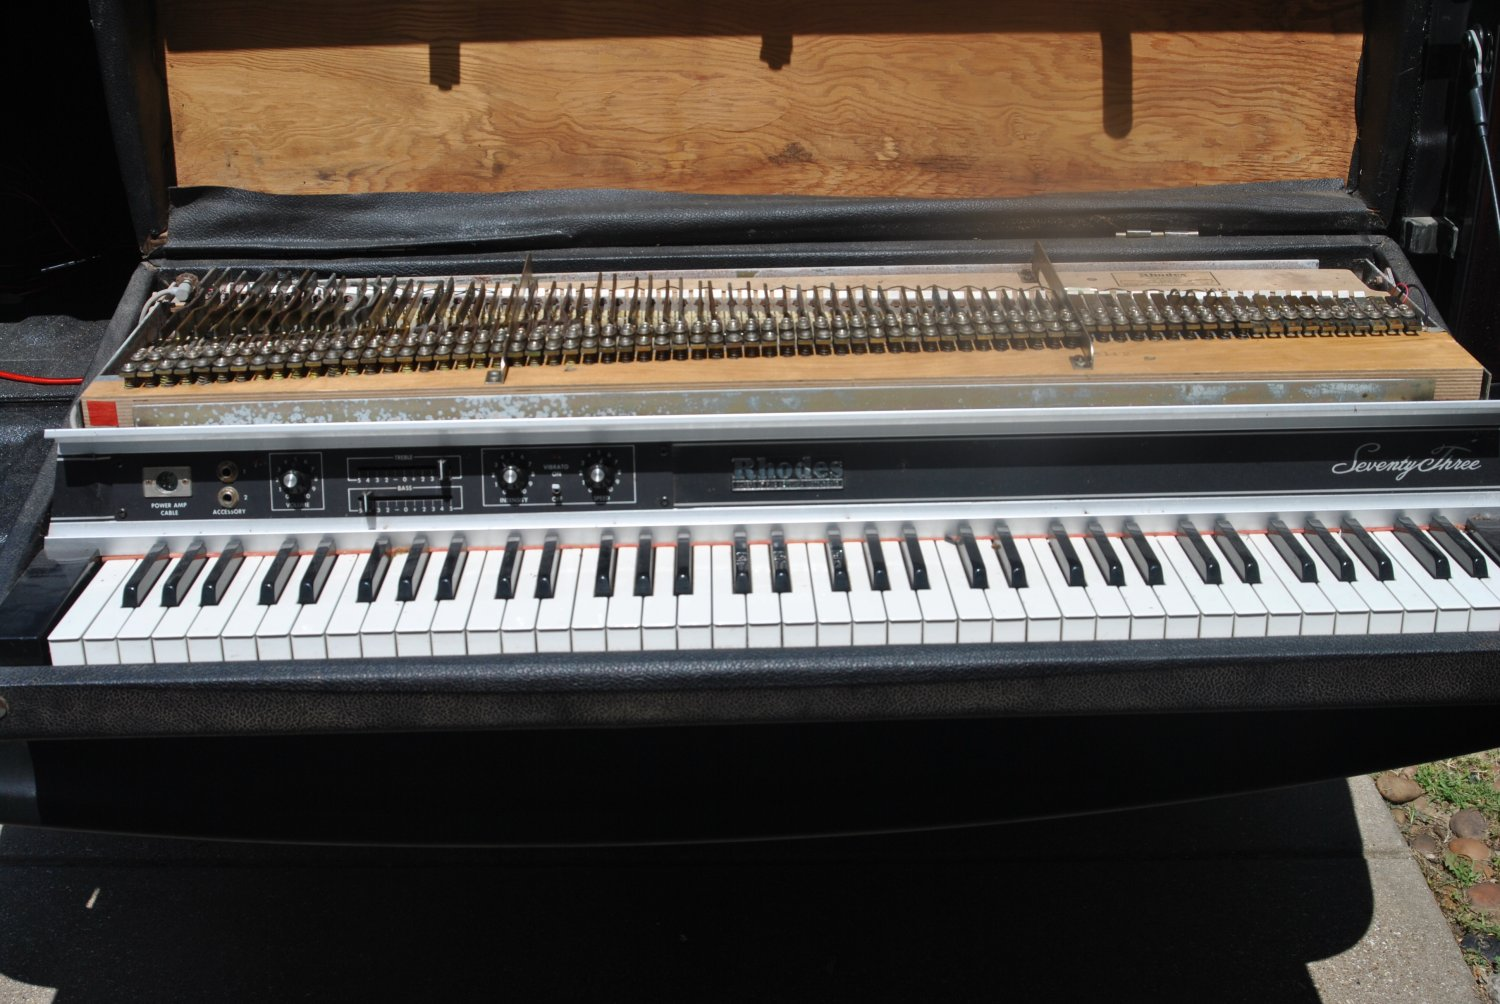 Late 70's Fender Rhodes 73 Seventy Three Key Piano-Attic Find- As Is Project Keyboard_